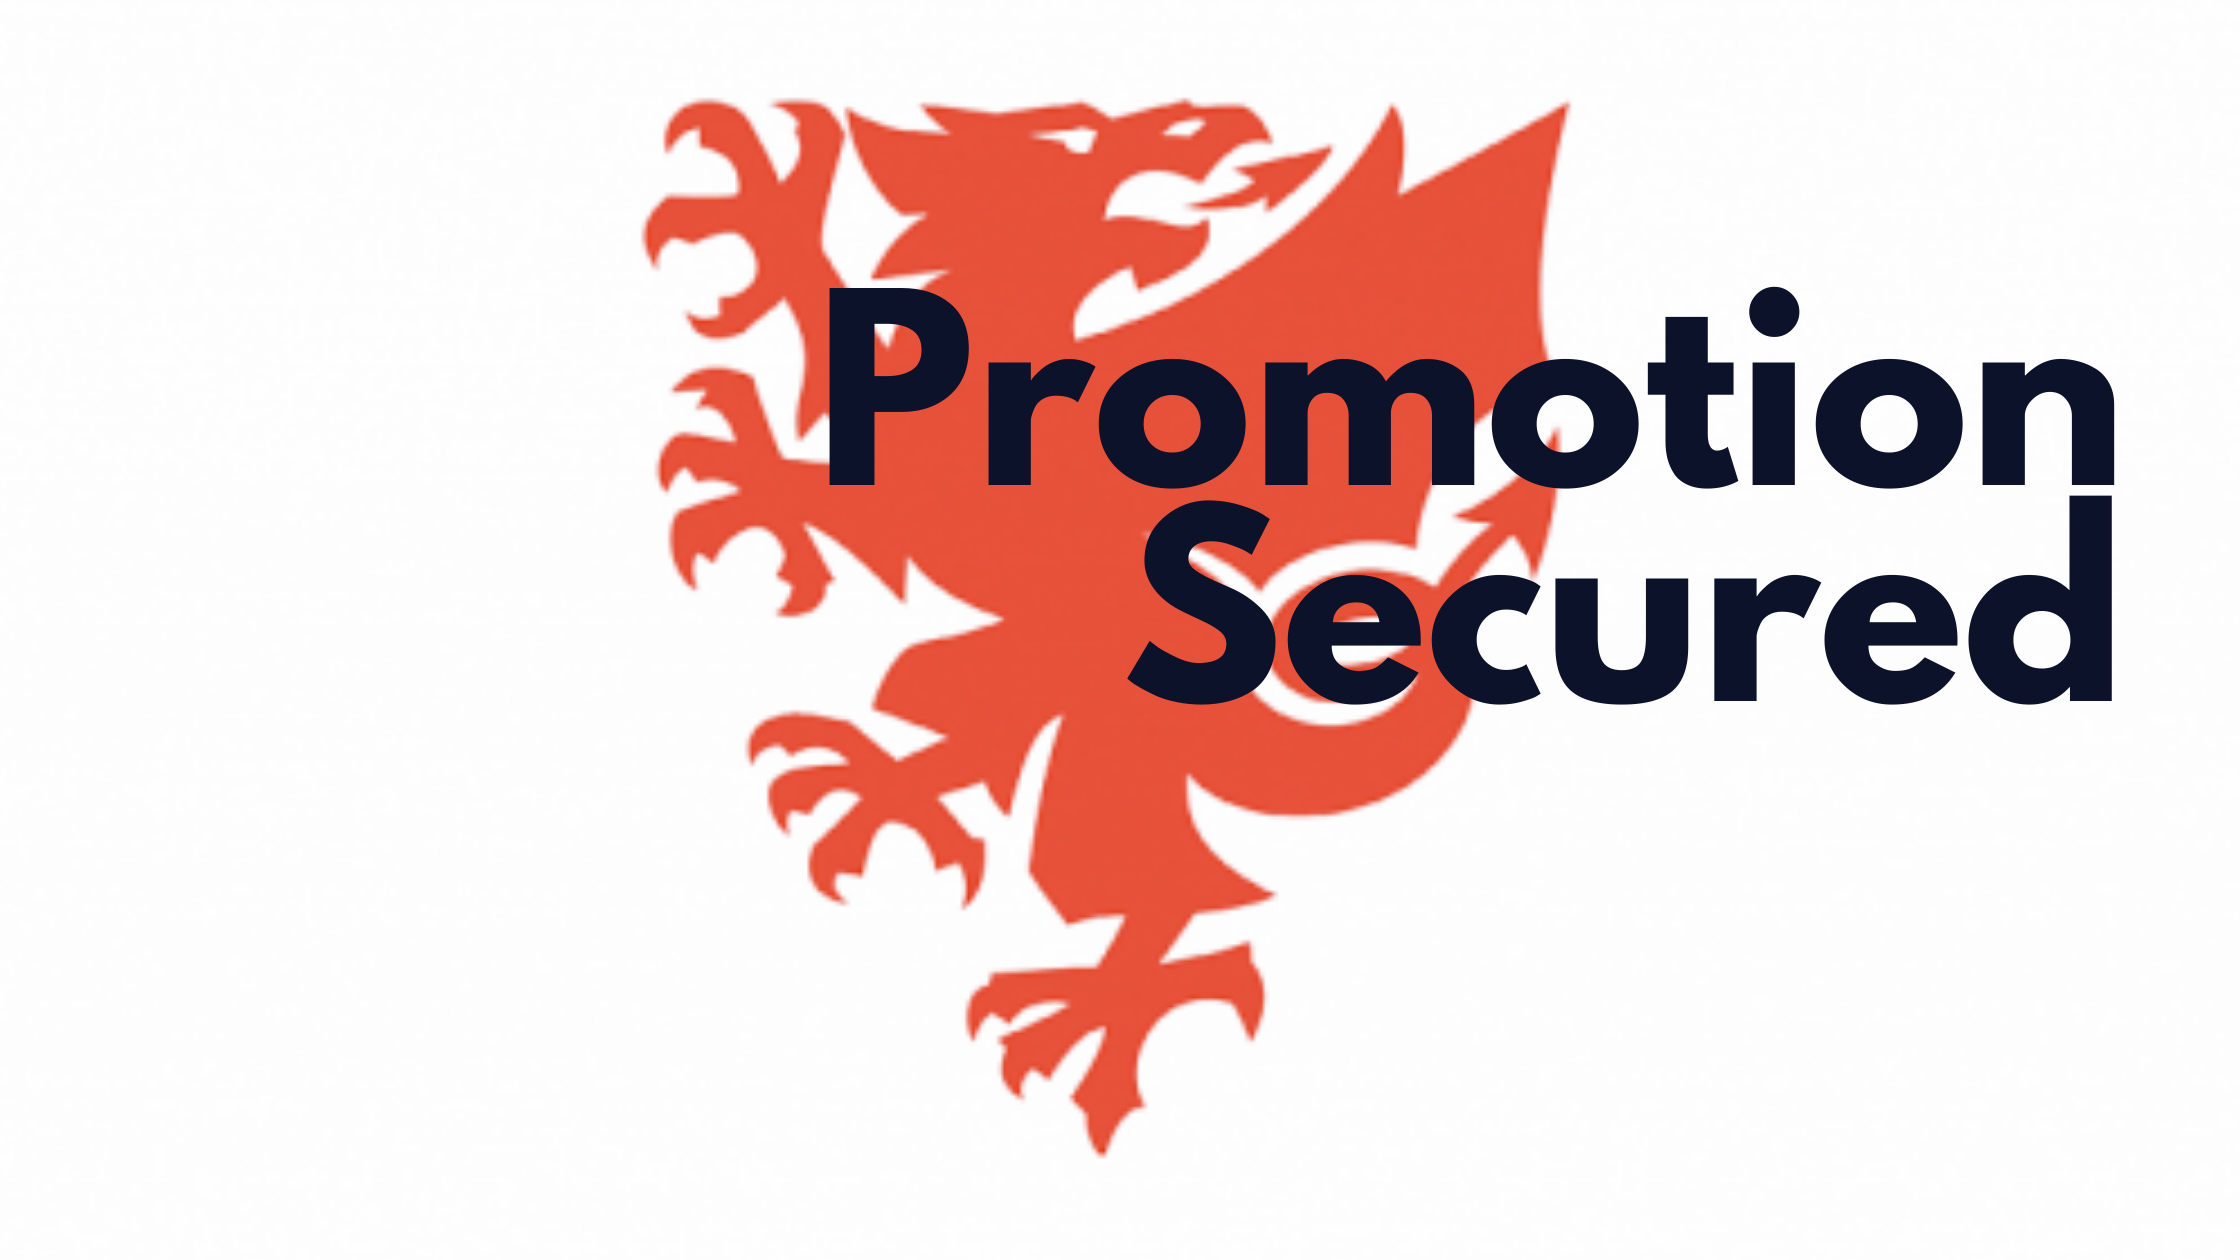 Pomotion secured text on logo of FAW